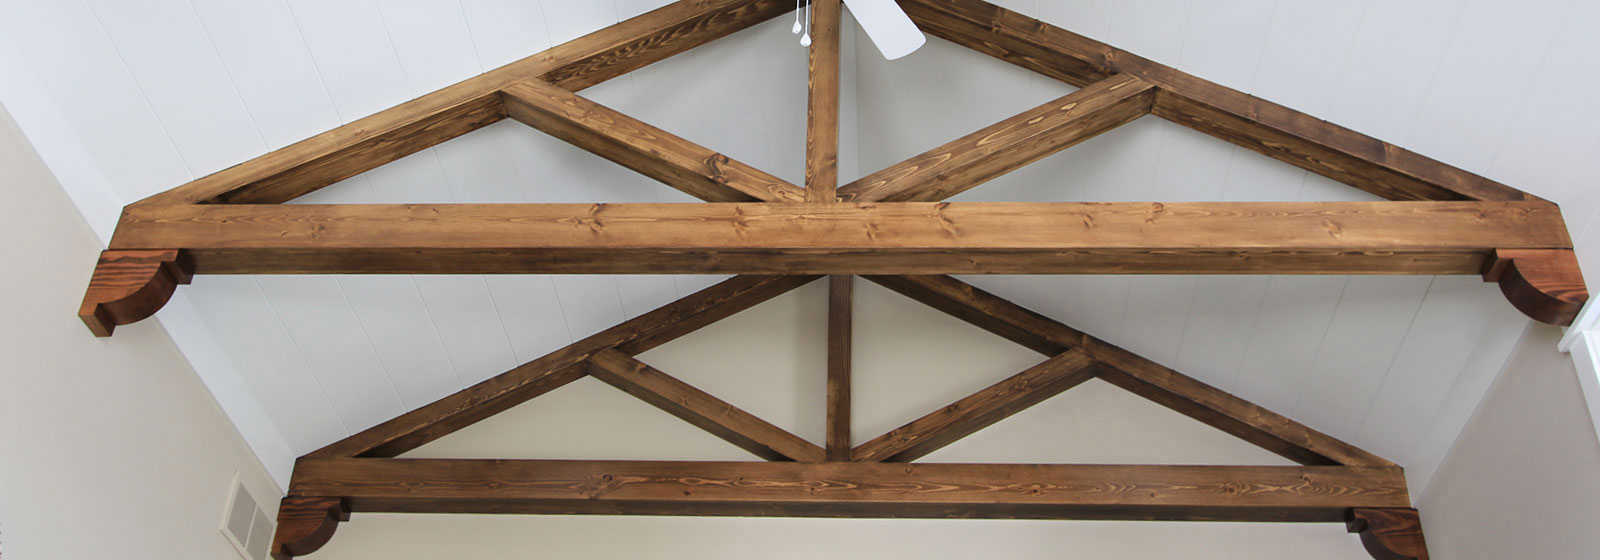 Wood Gable Bracket Pediments